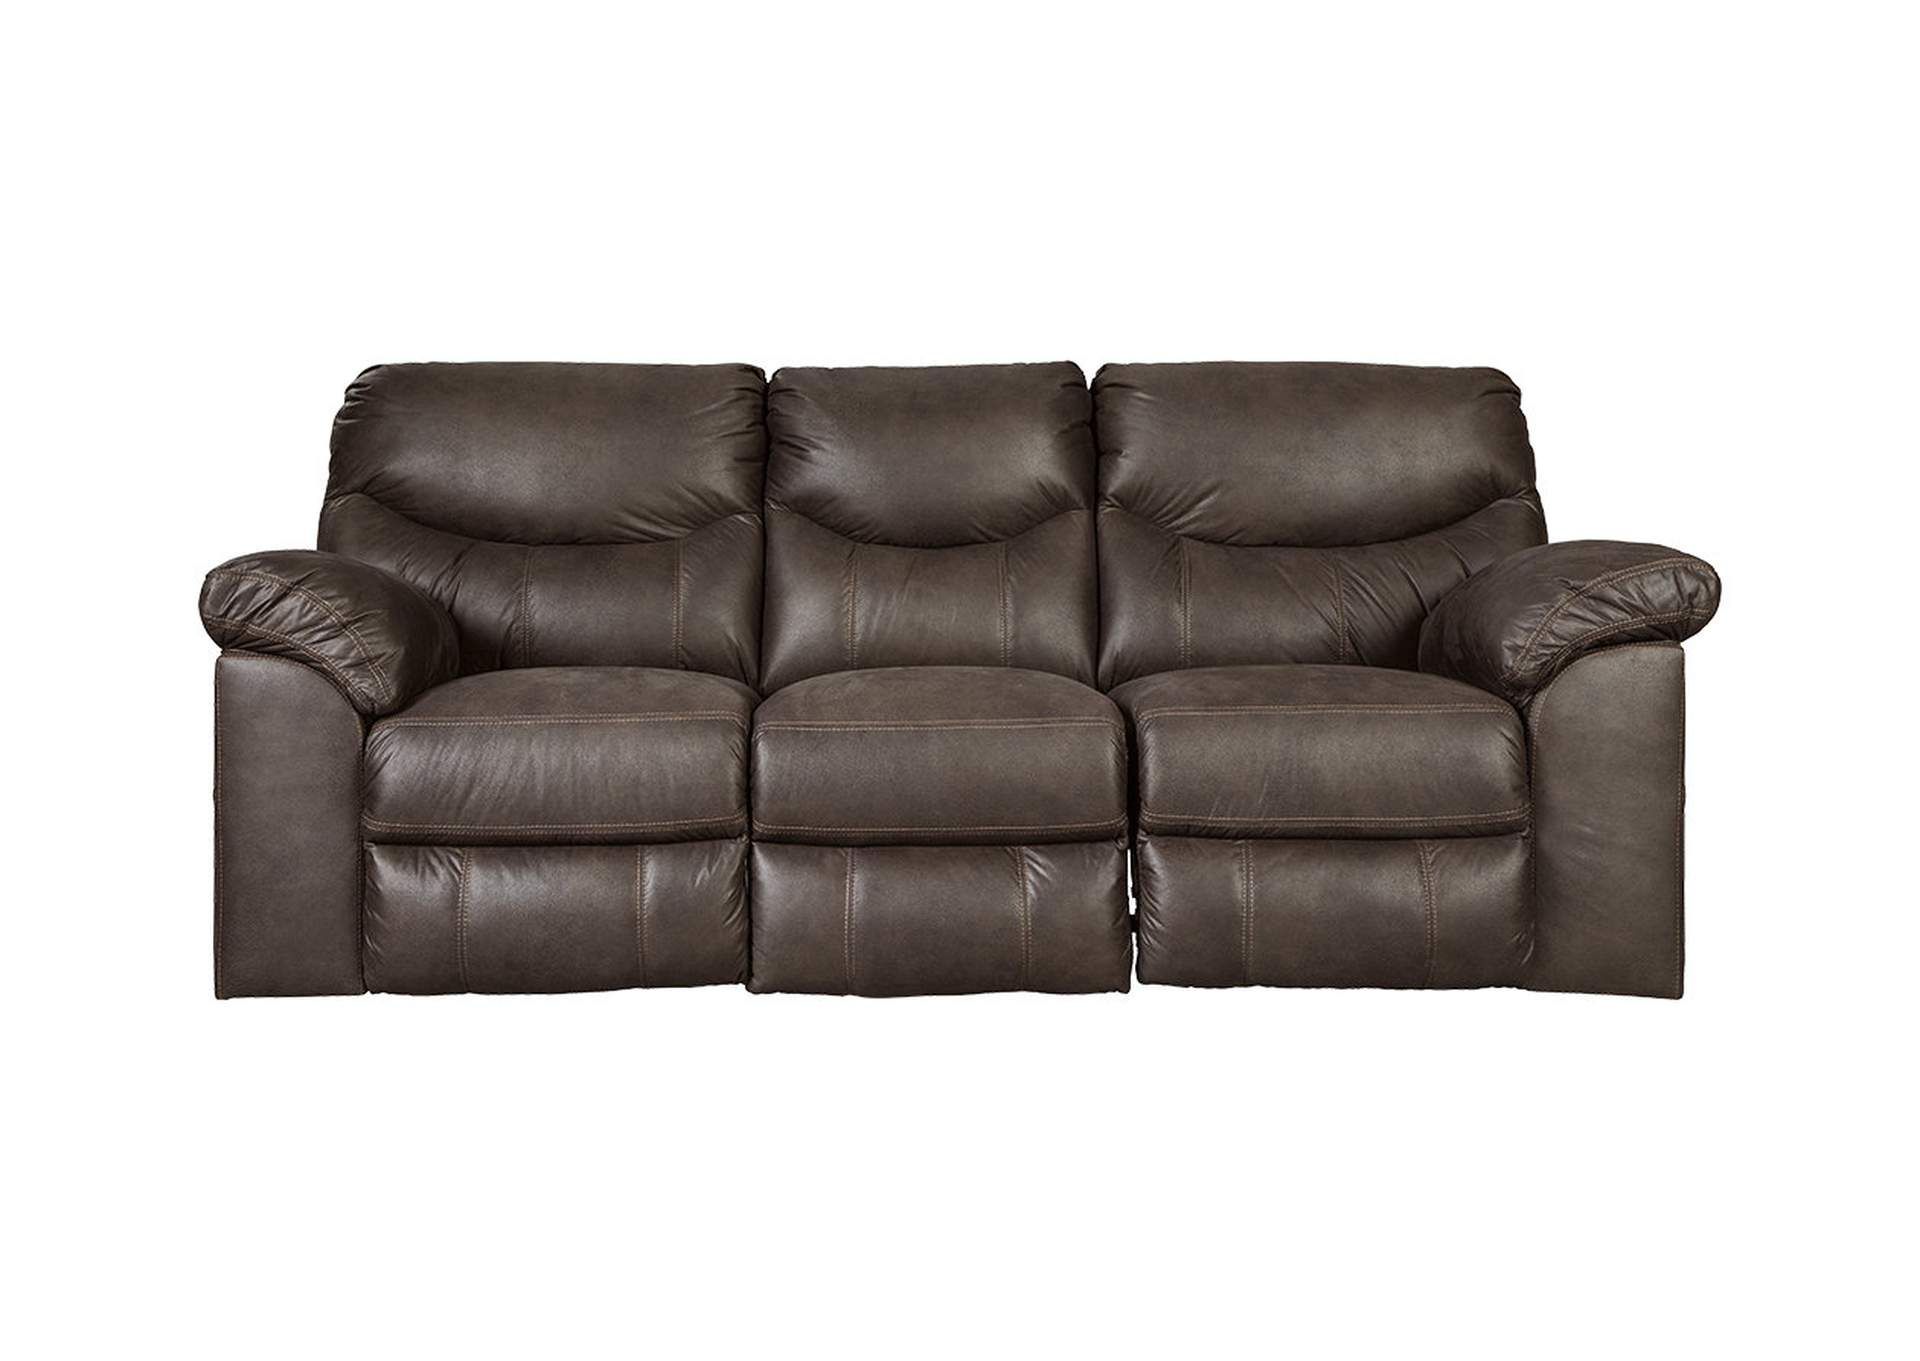 Boxberg Teak Reclining Sofa,Signature Design By Ashley